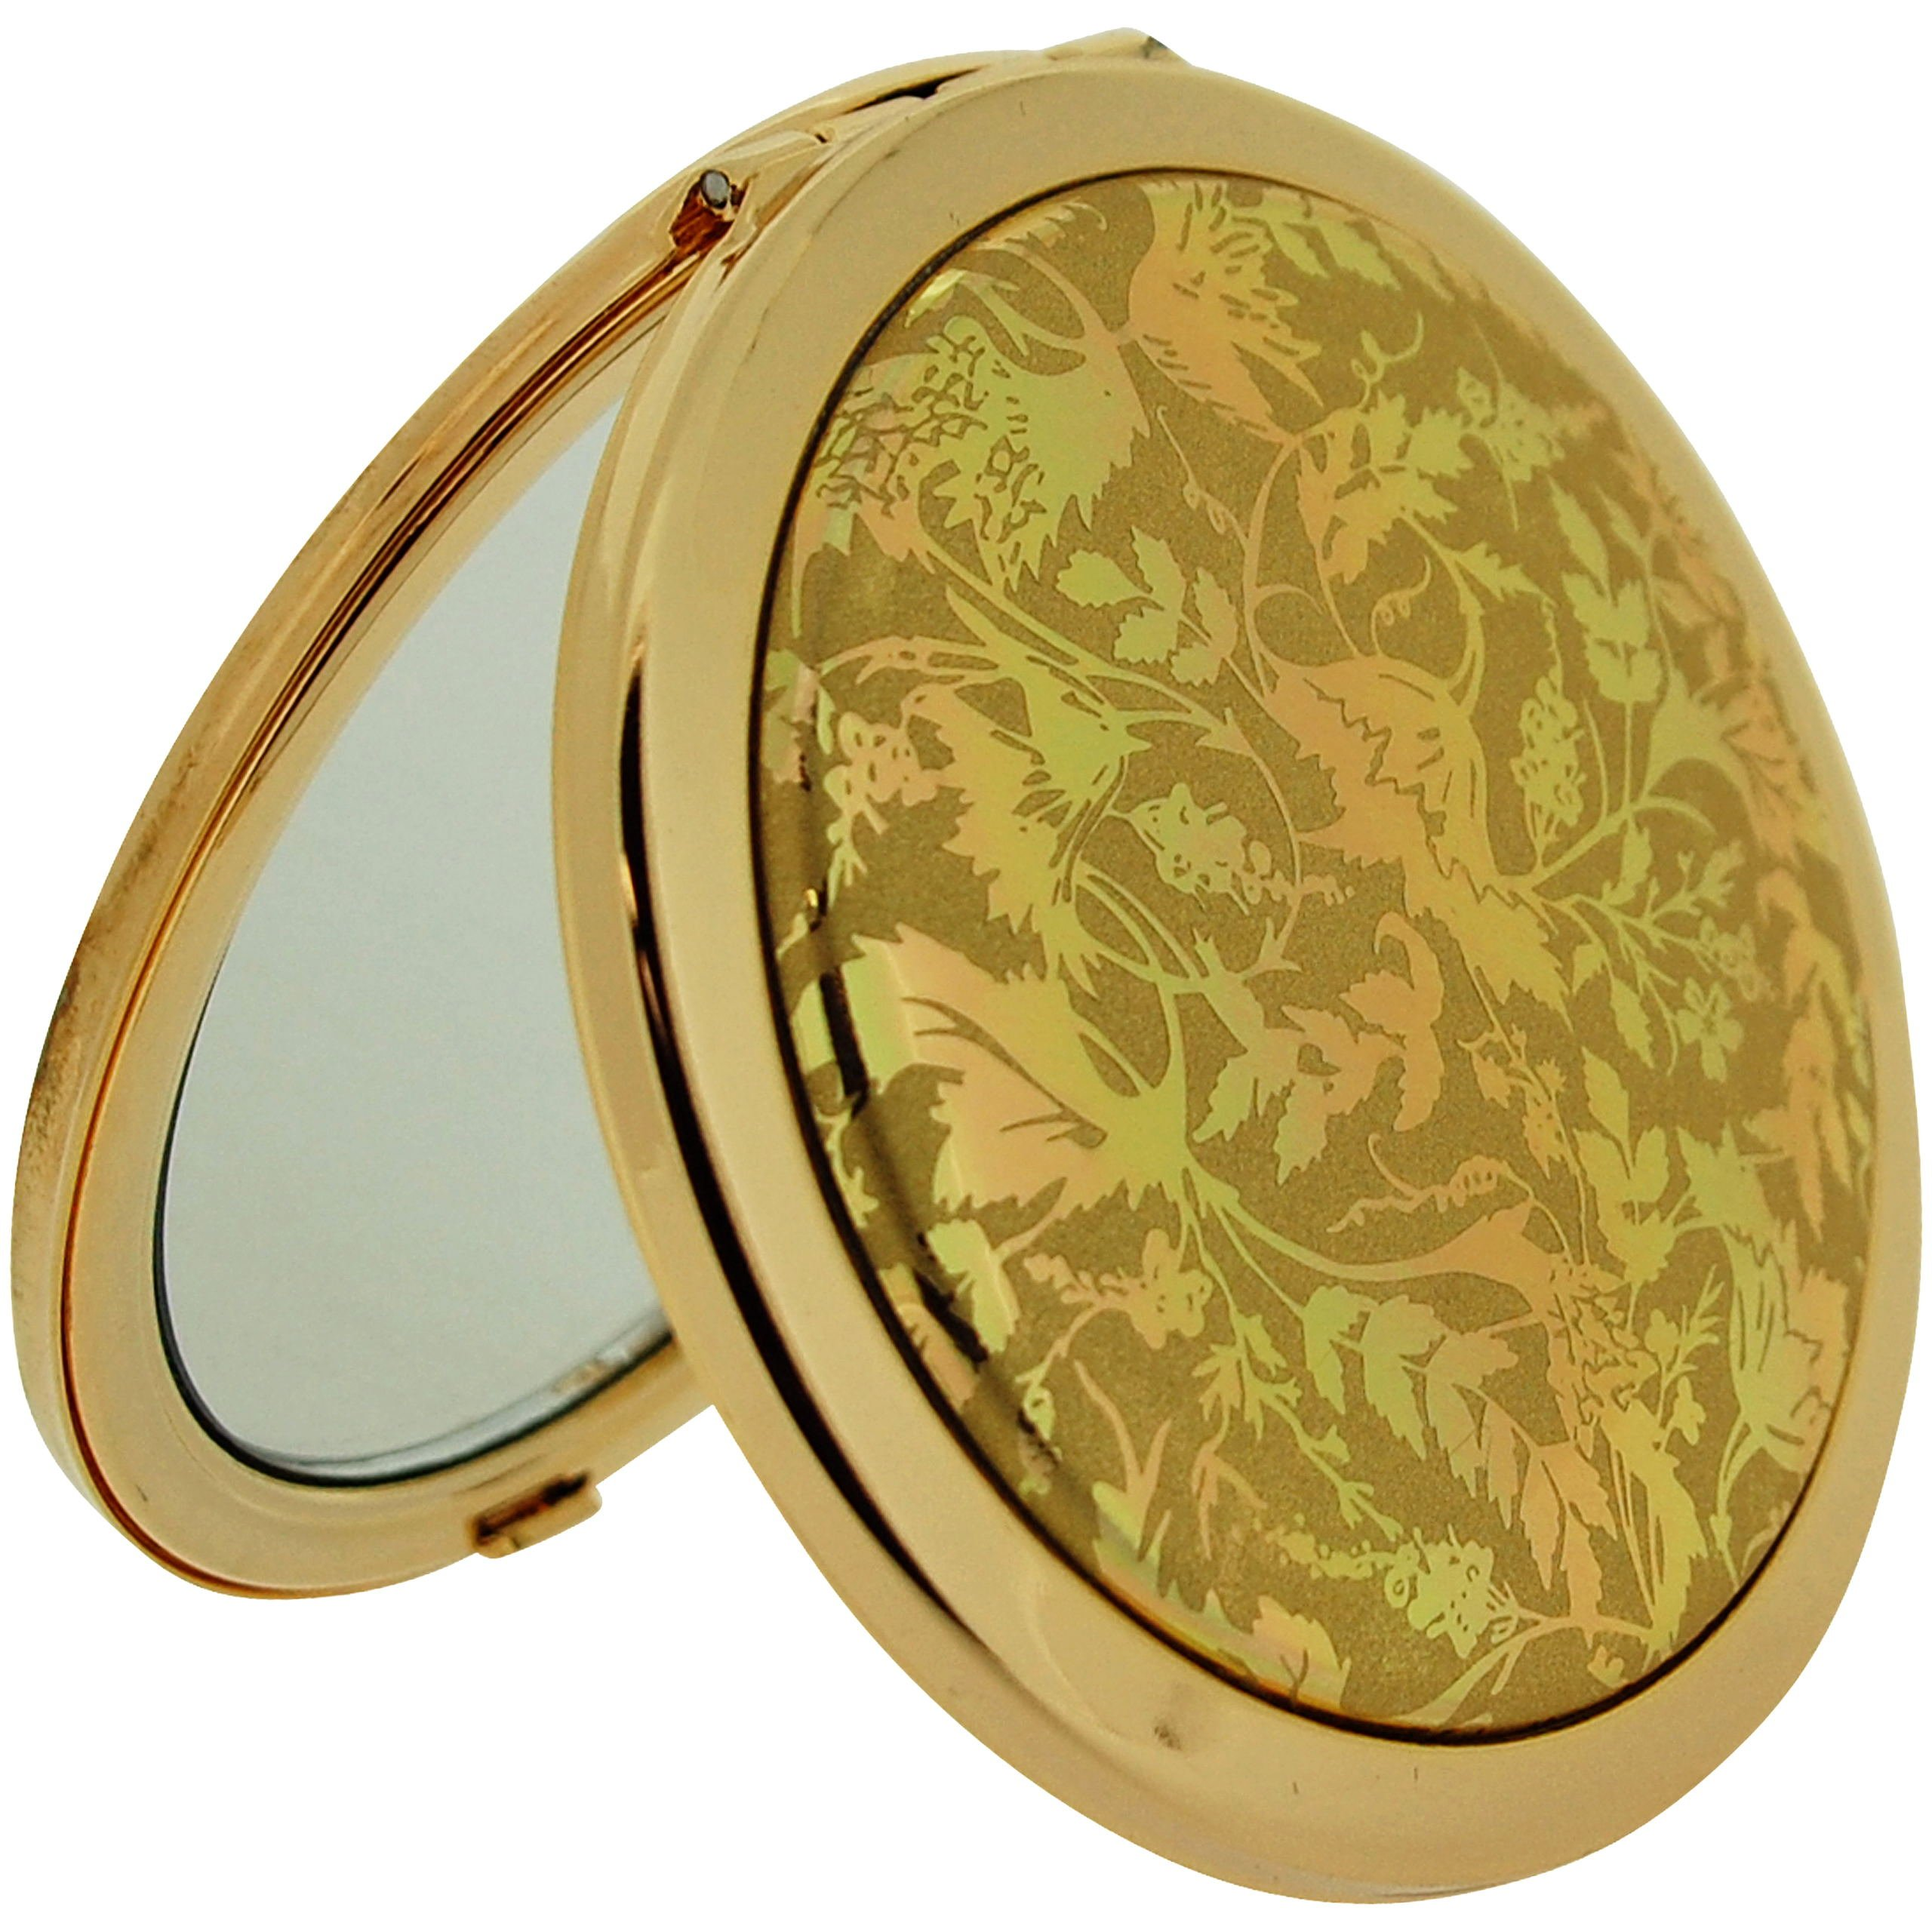 Stratton Compact Mirror Ladies Heritage Collection Double Pocket Mirror 3x Magnification Goldtone Design ST1125